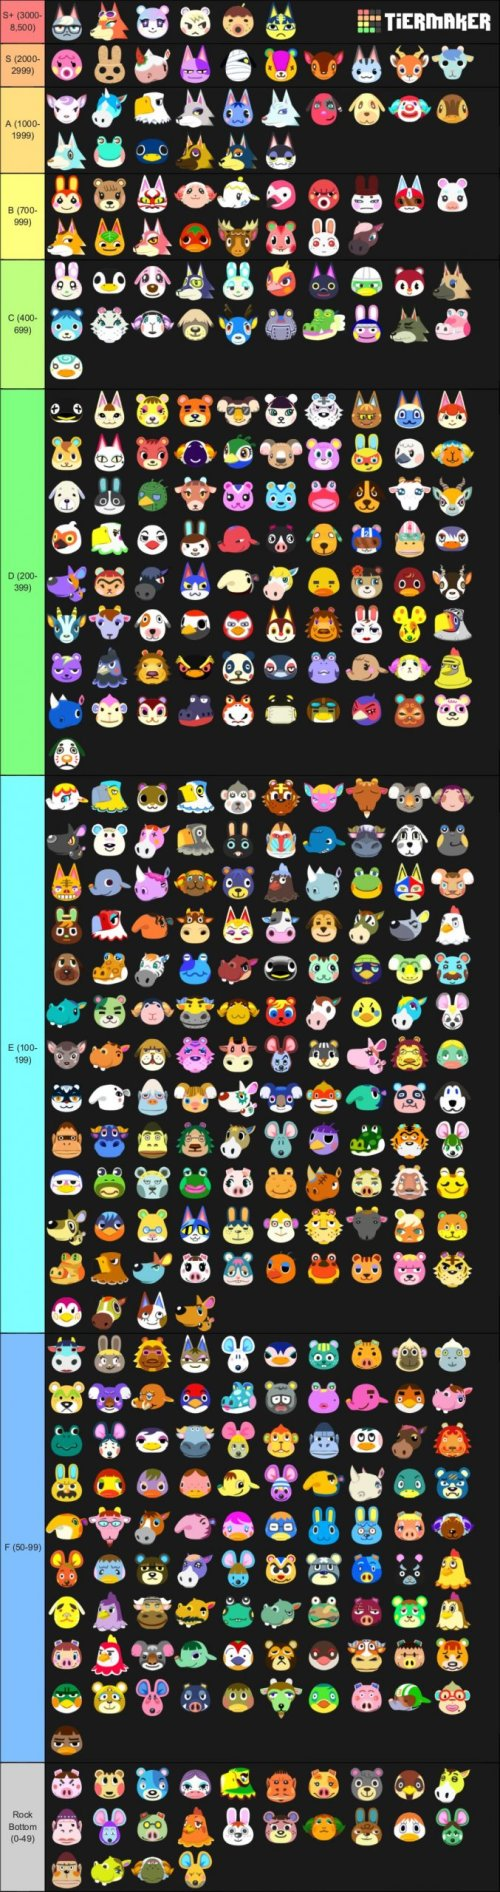 tier list japon animal crossing New Horizons